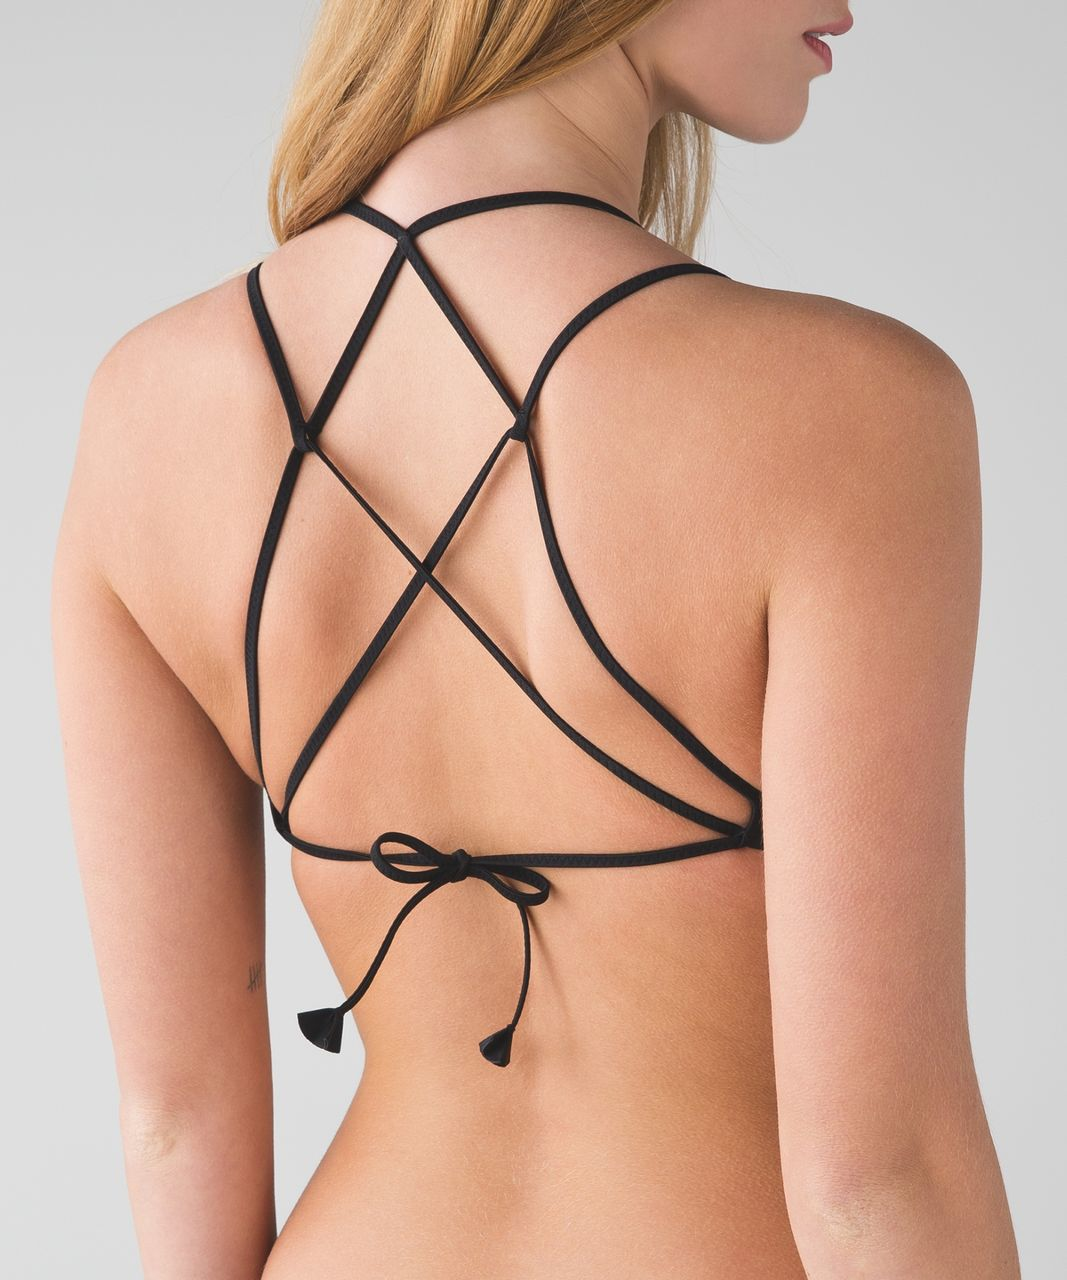 Lululemon Tidal Flow Triangle Top - Black